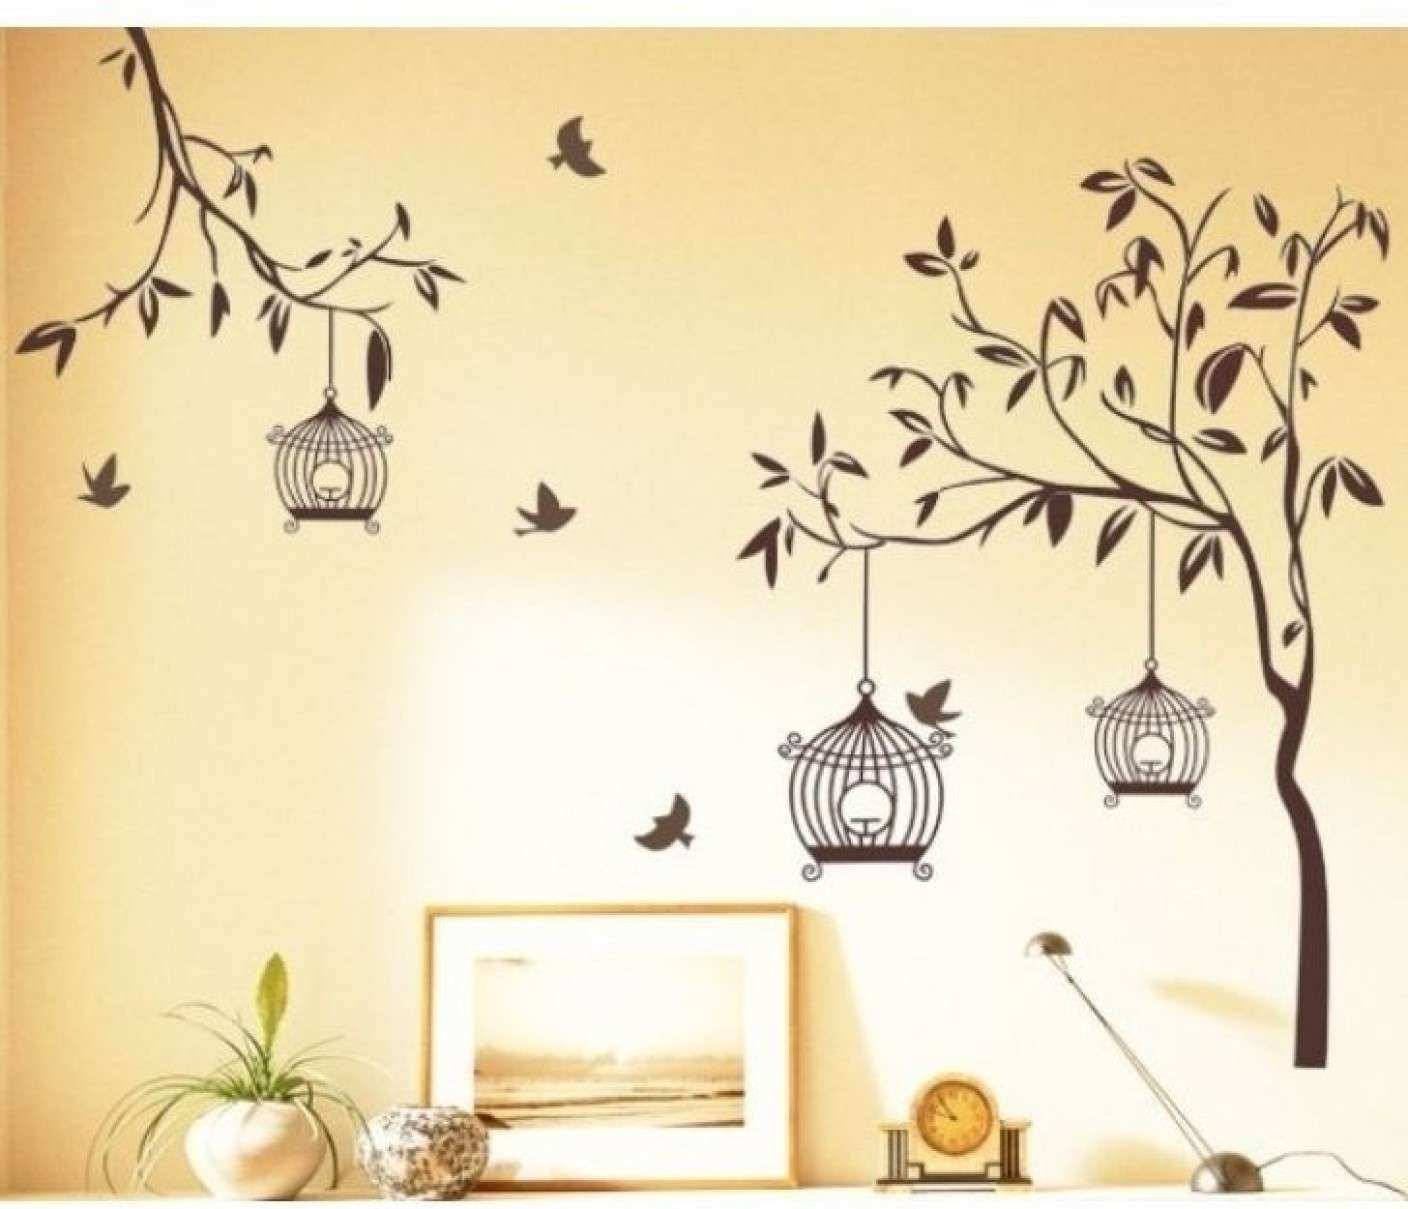 Wall Decor Decal Fresh Aquire Small Pvc Vinyl Sticker Price In India ...